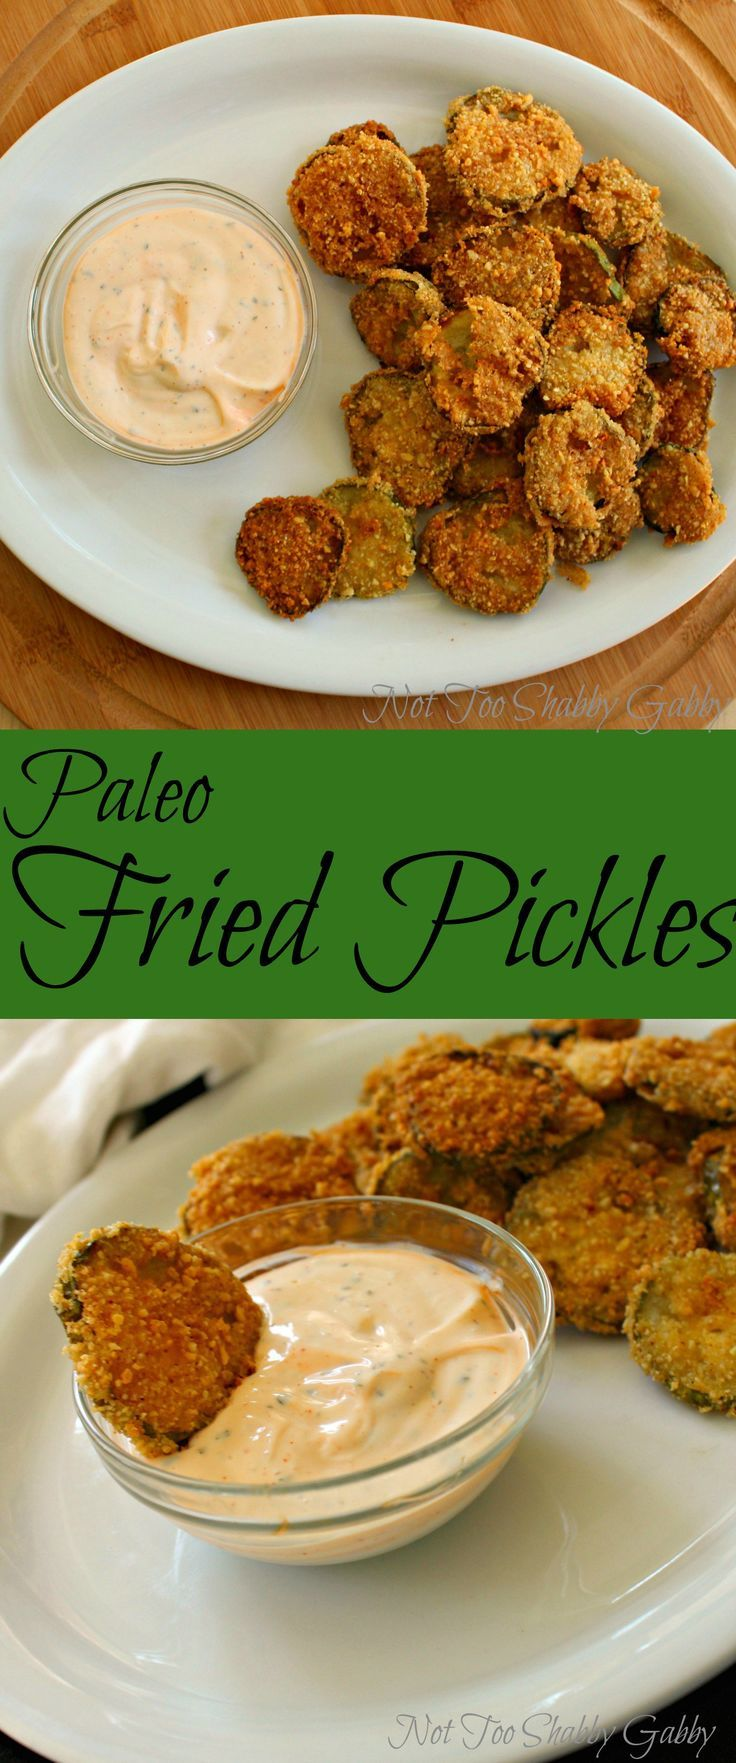 Paleo Fried Pickles the perfect snack to chow down on anytime of the day. So easy to make, super yummy and healthier than many other snacks! |paleo fried pickles| |fried pickles| |paleo| |paleo recipe| |gluten free| |gluten free recipe| |gluten free fried pickles|